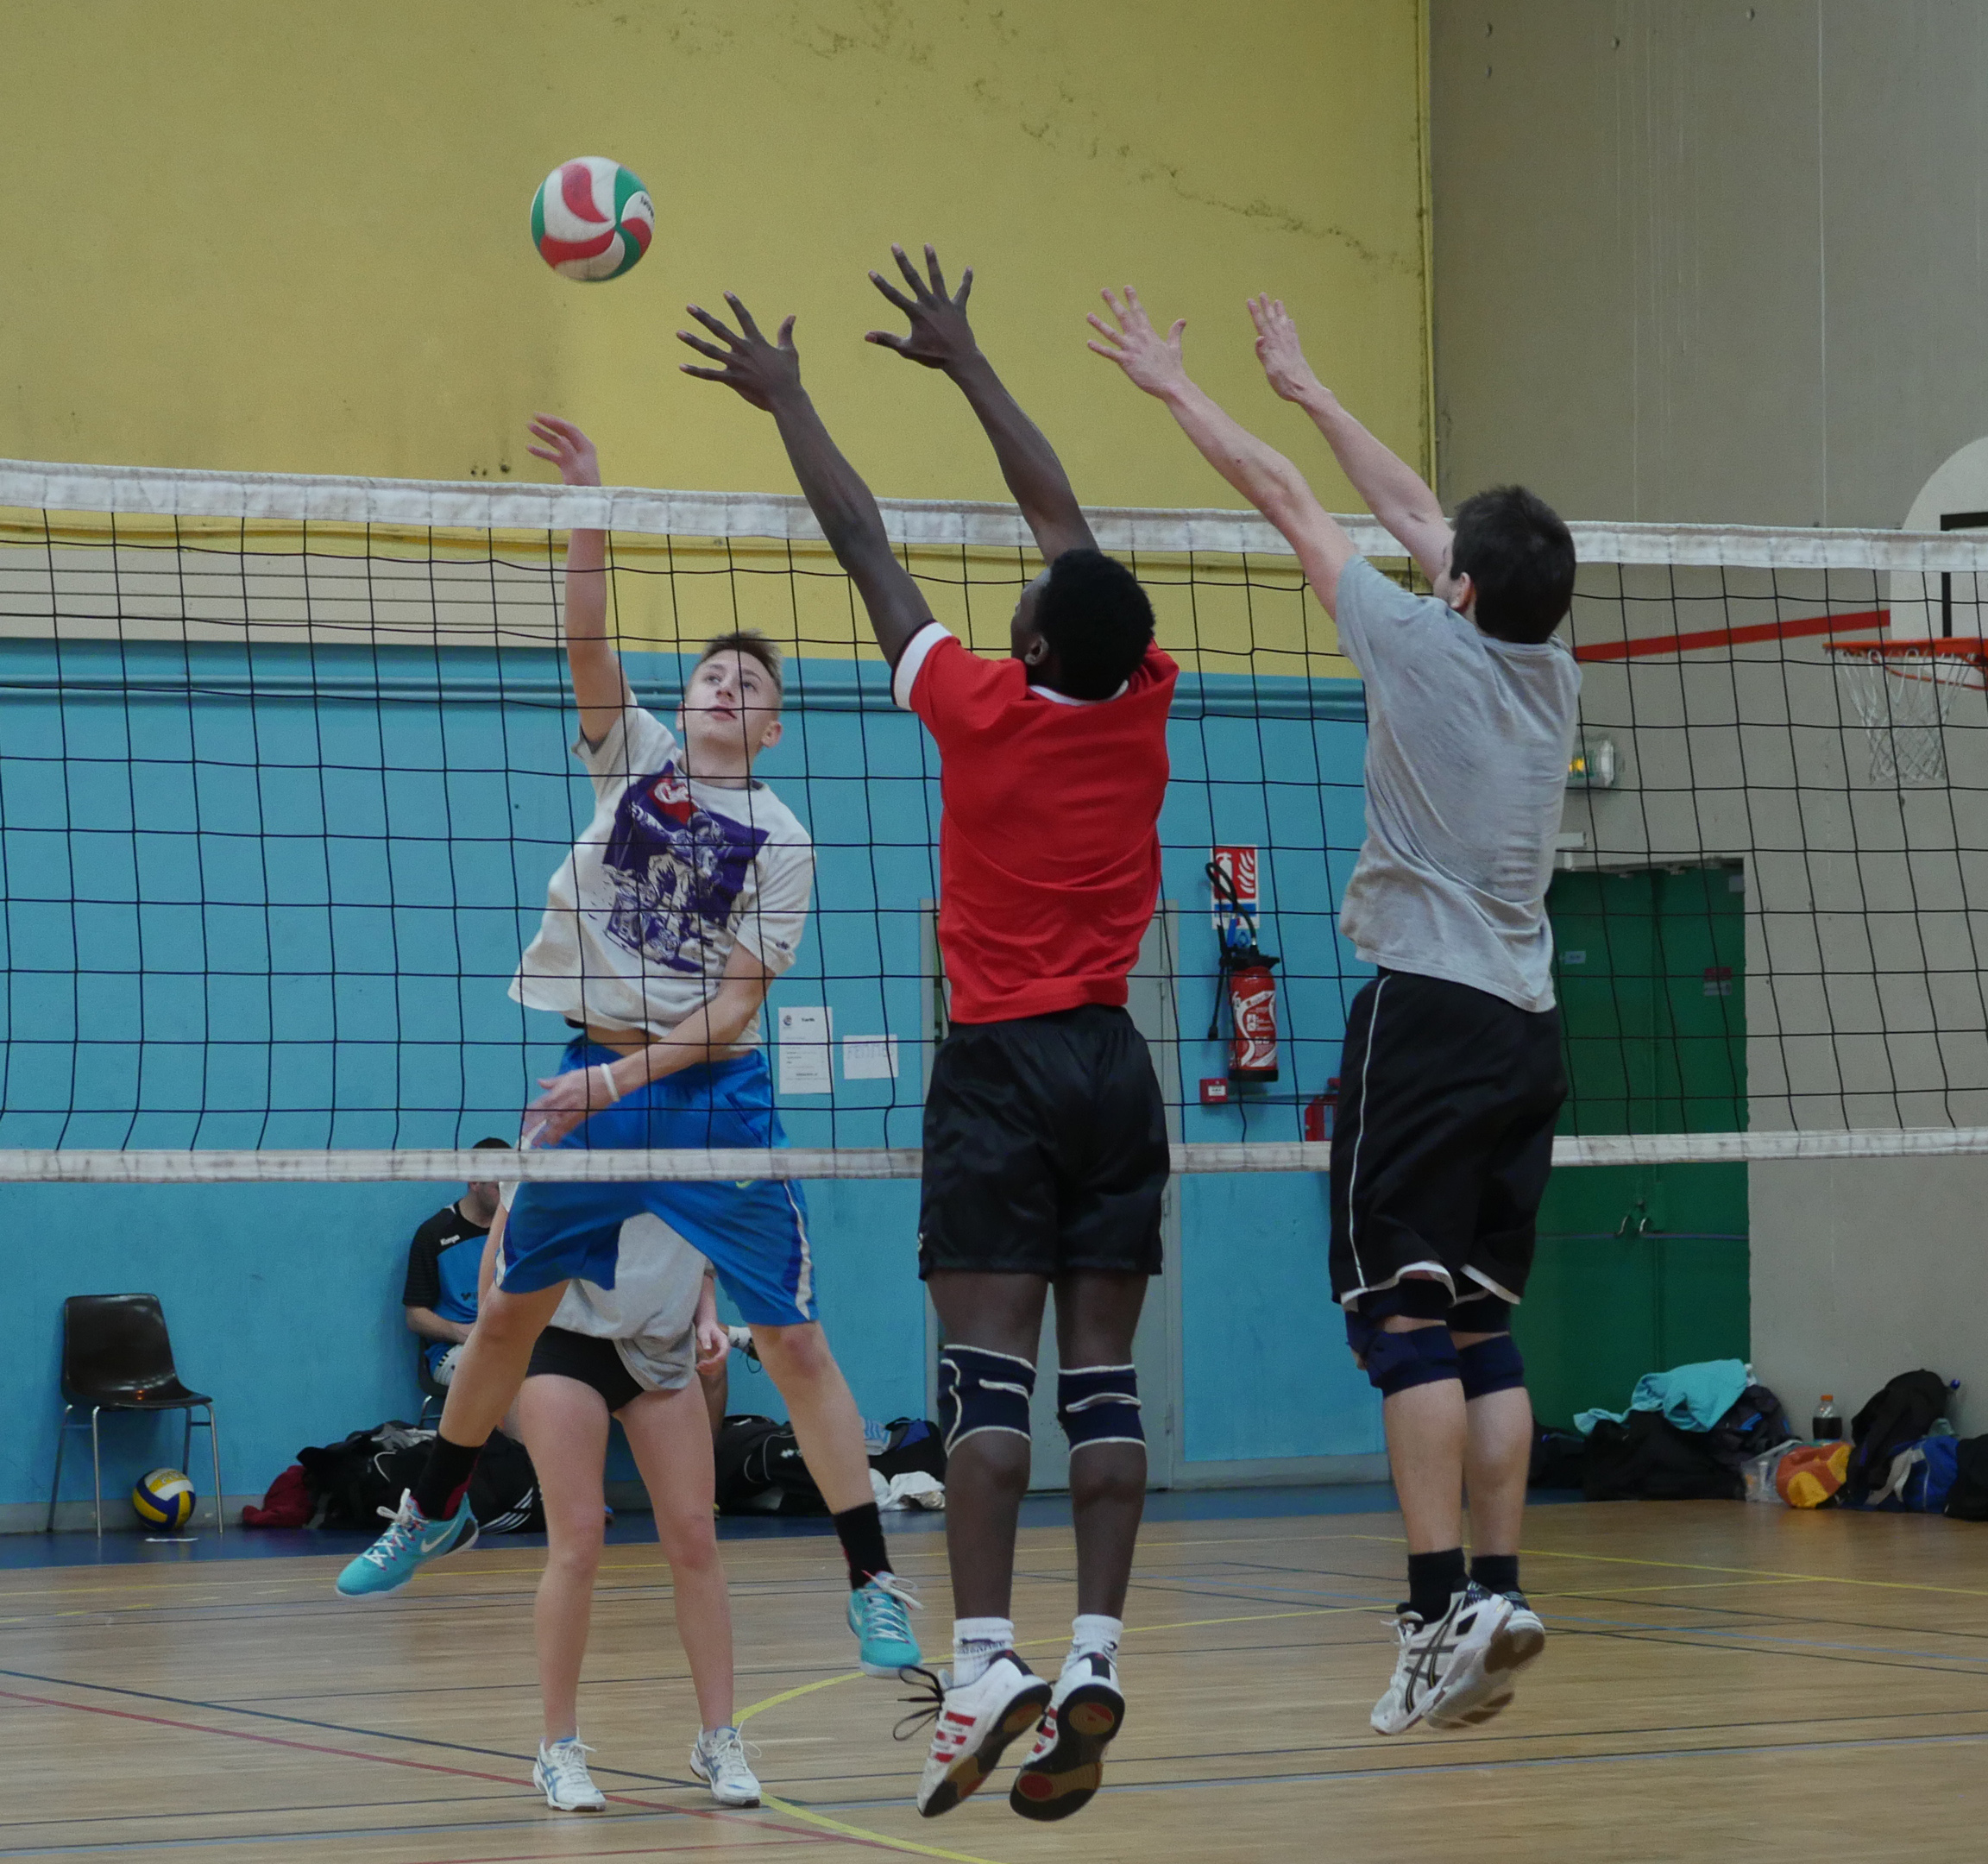 Tournoi Volley USMA 2015-45.JPG